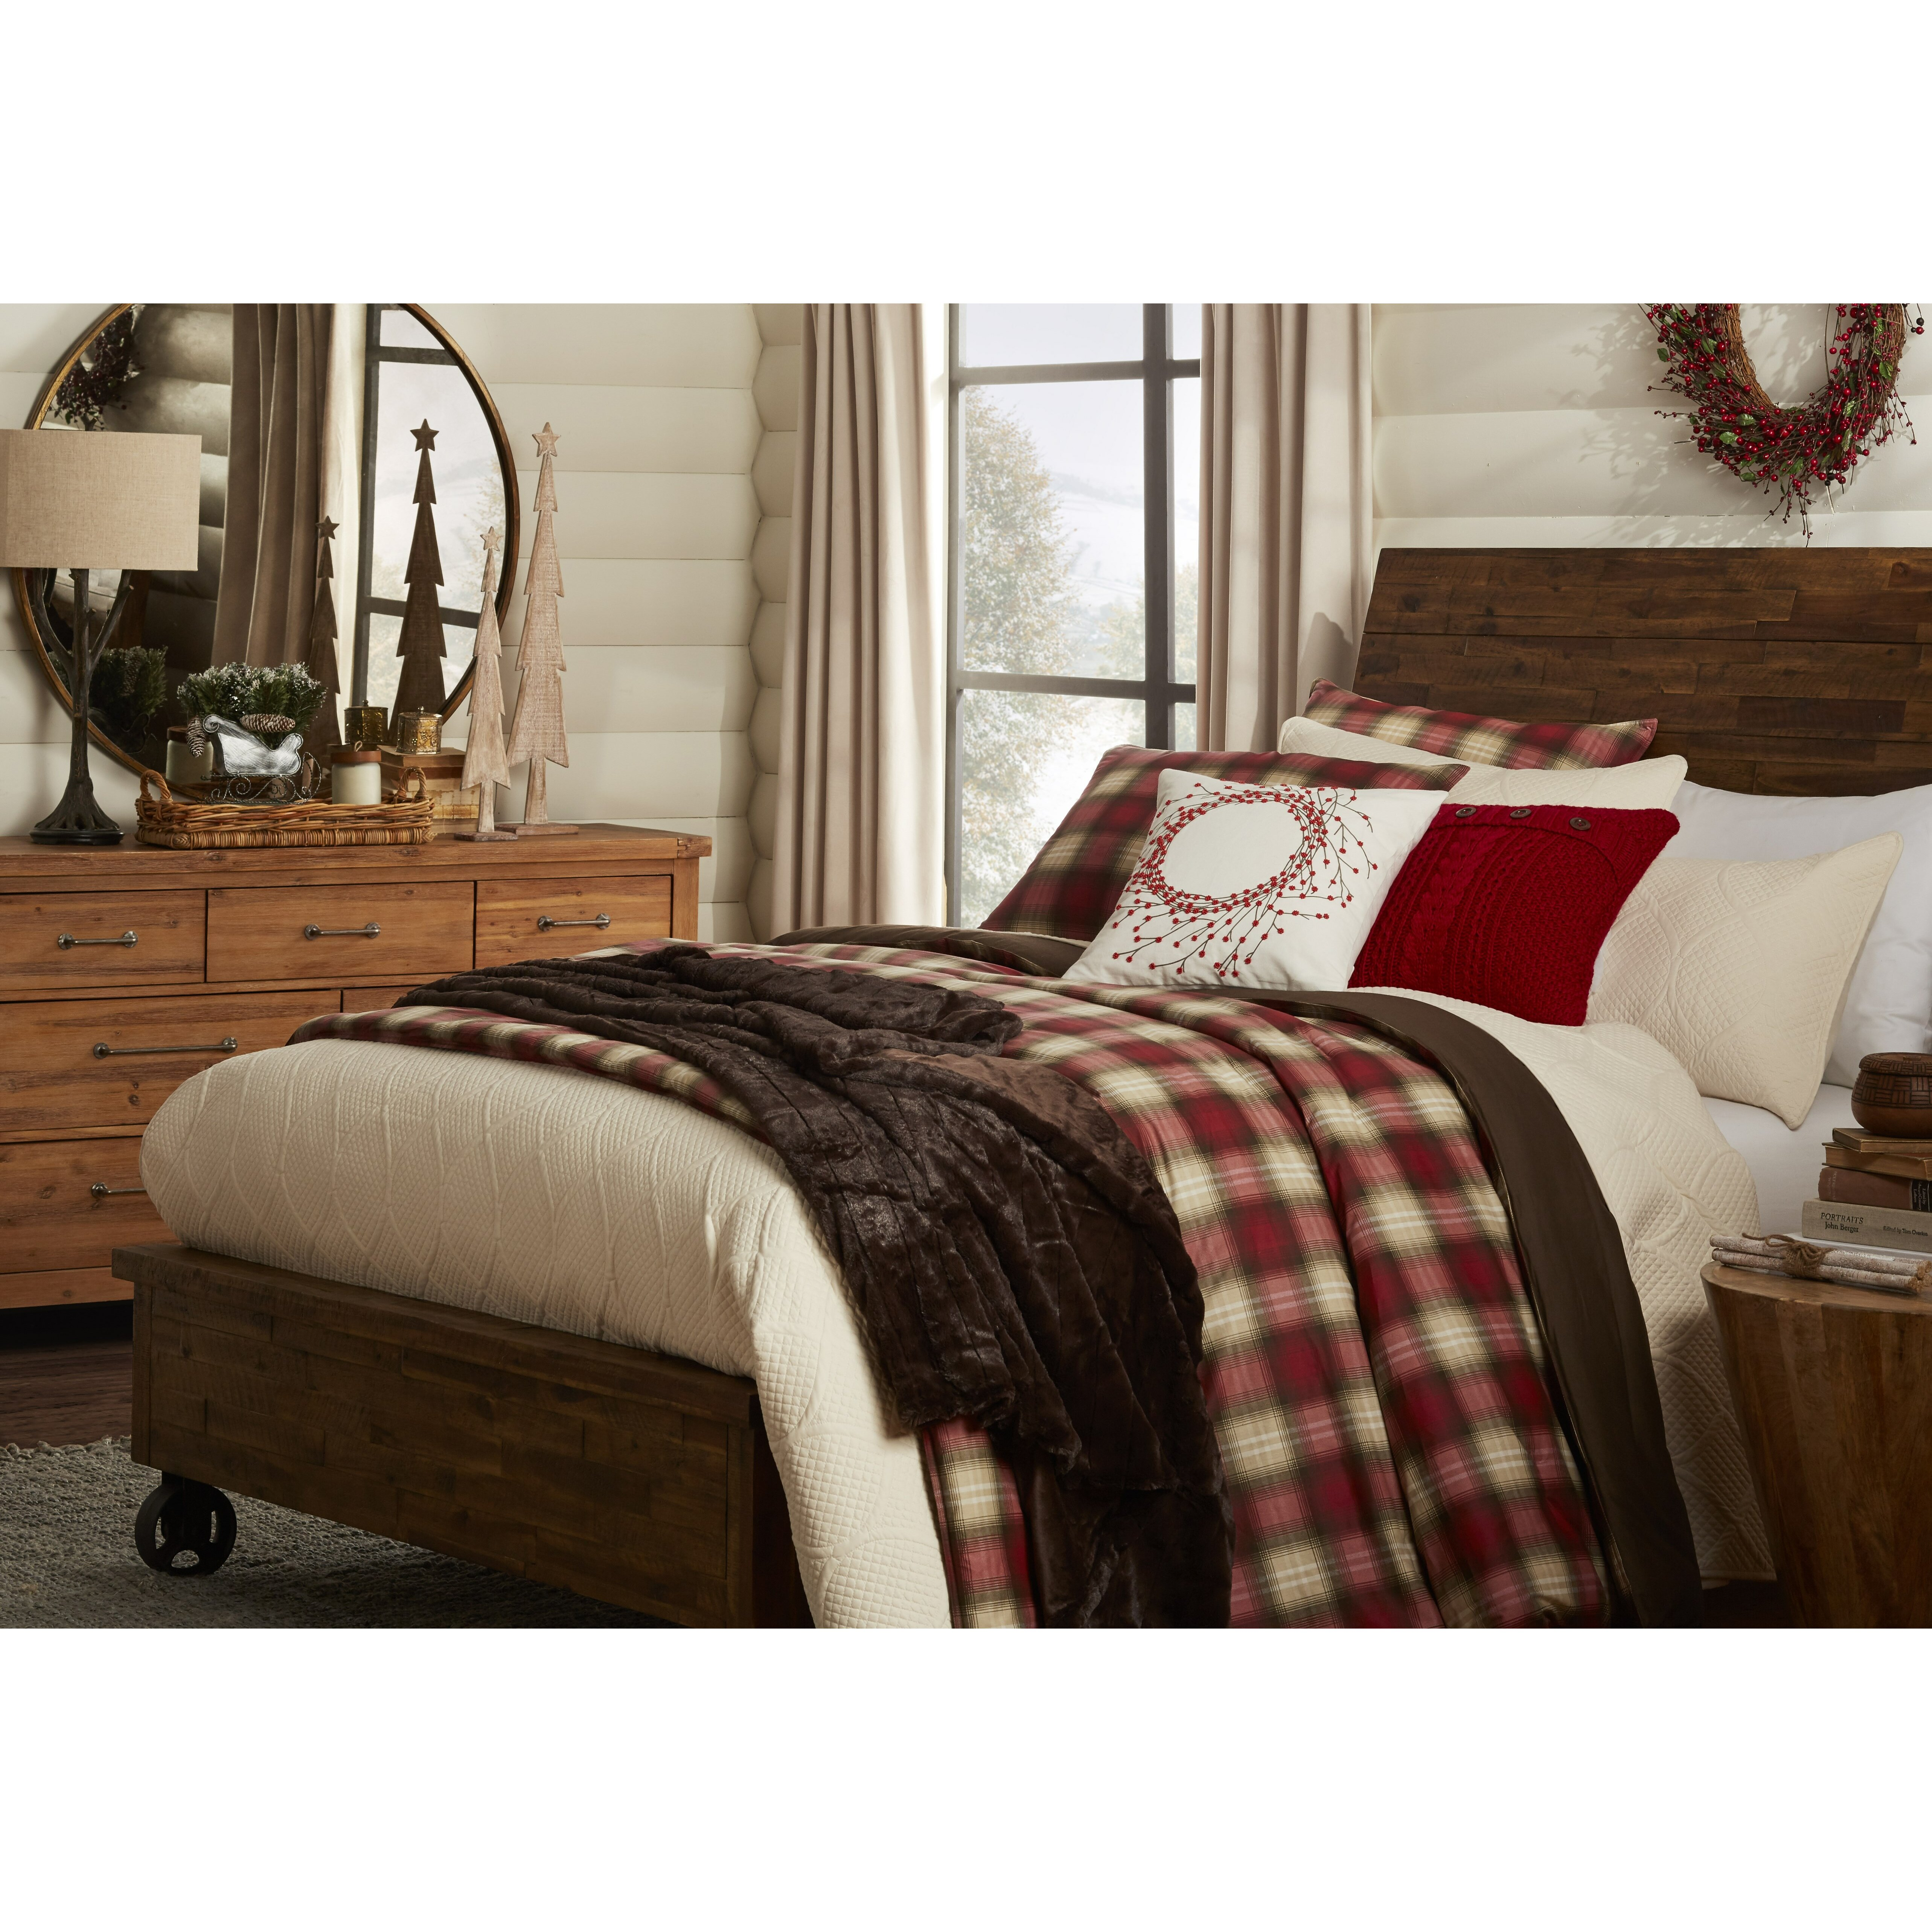 bauer down bath product today set alternative eddie free plaid shipping rugged comforter piece sets overstock bedding